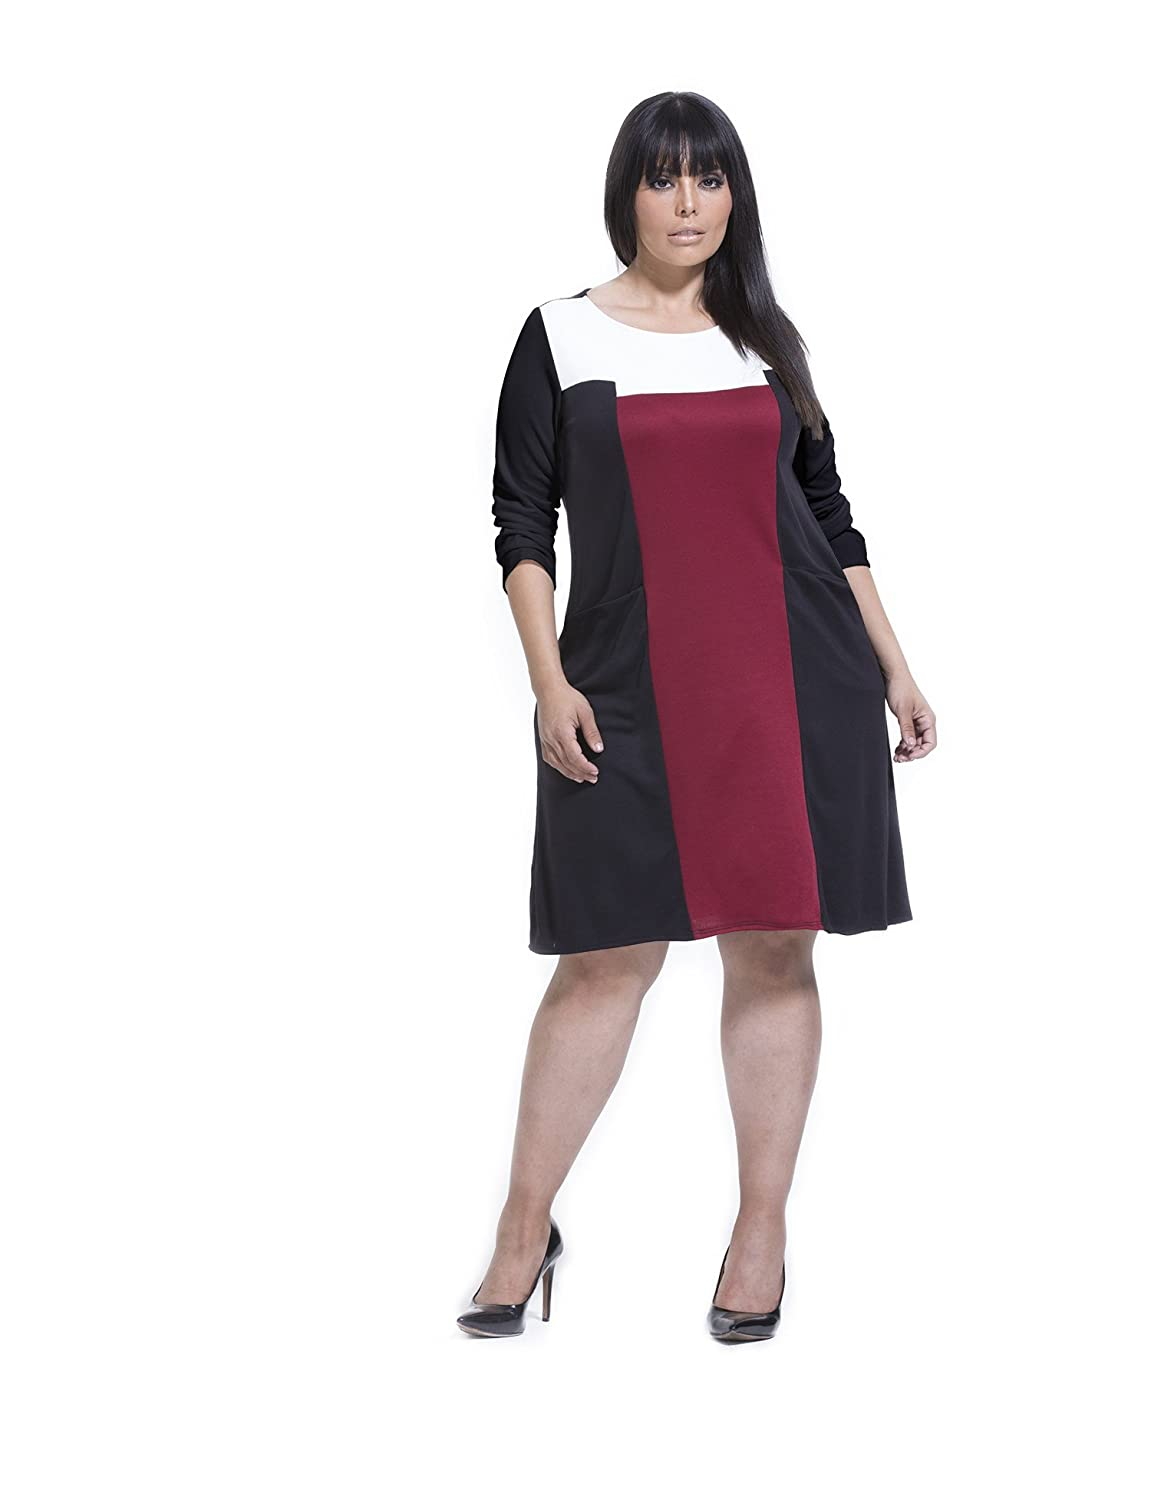 1960s Style Dresses- Retro Inspired Fashion KARI LYN Womens Plus Size Carly Colorblock Dress $69.00 AT vintagedancer.com